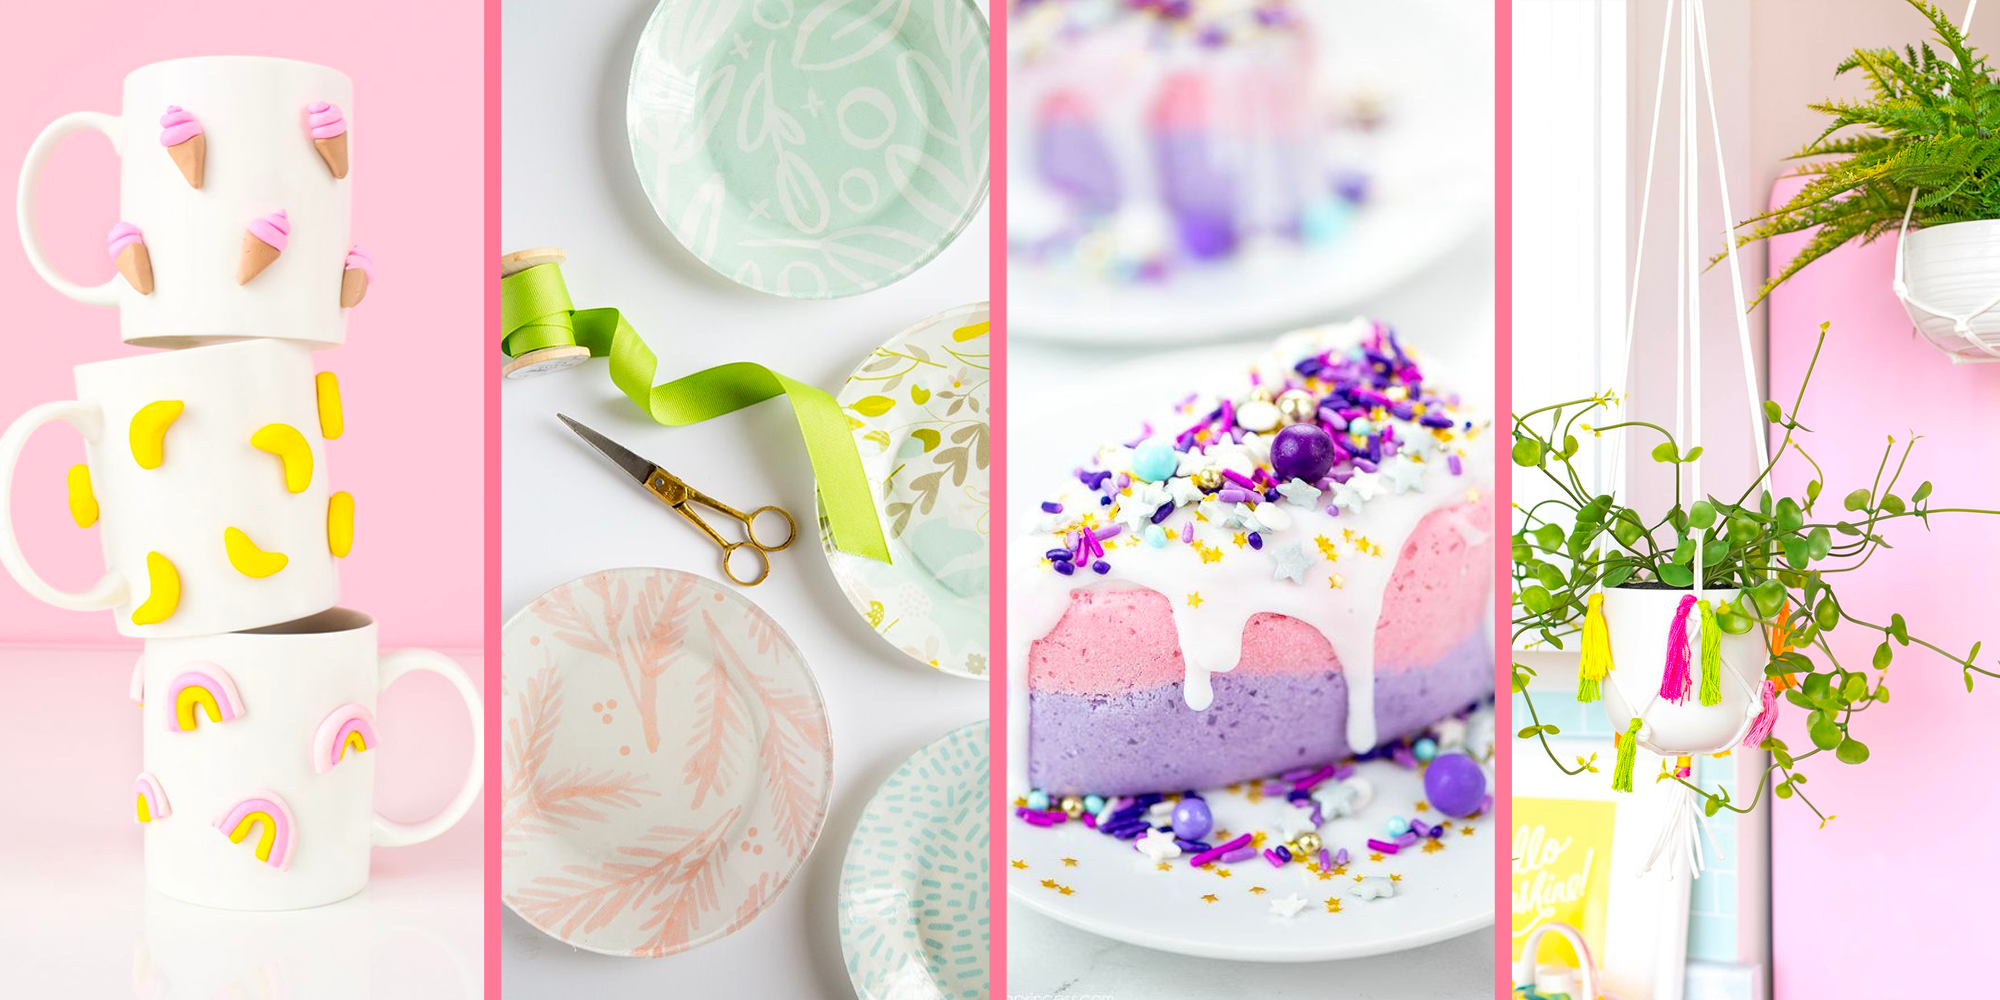 50 Diy Mother S Day Gifts Easy Homemade Mother S Day Crafts